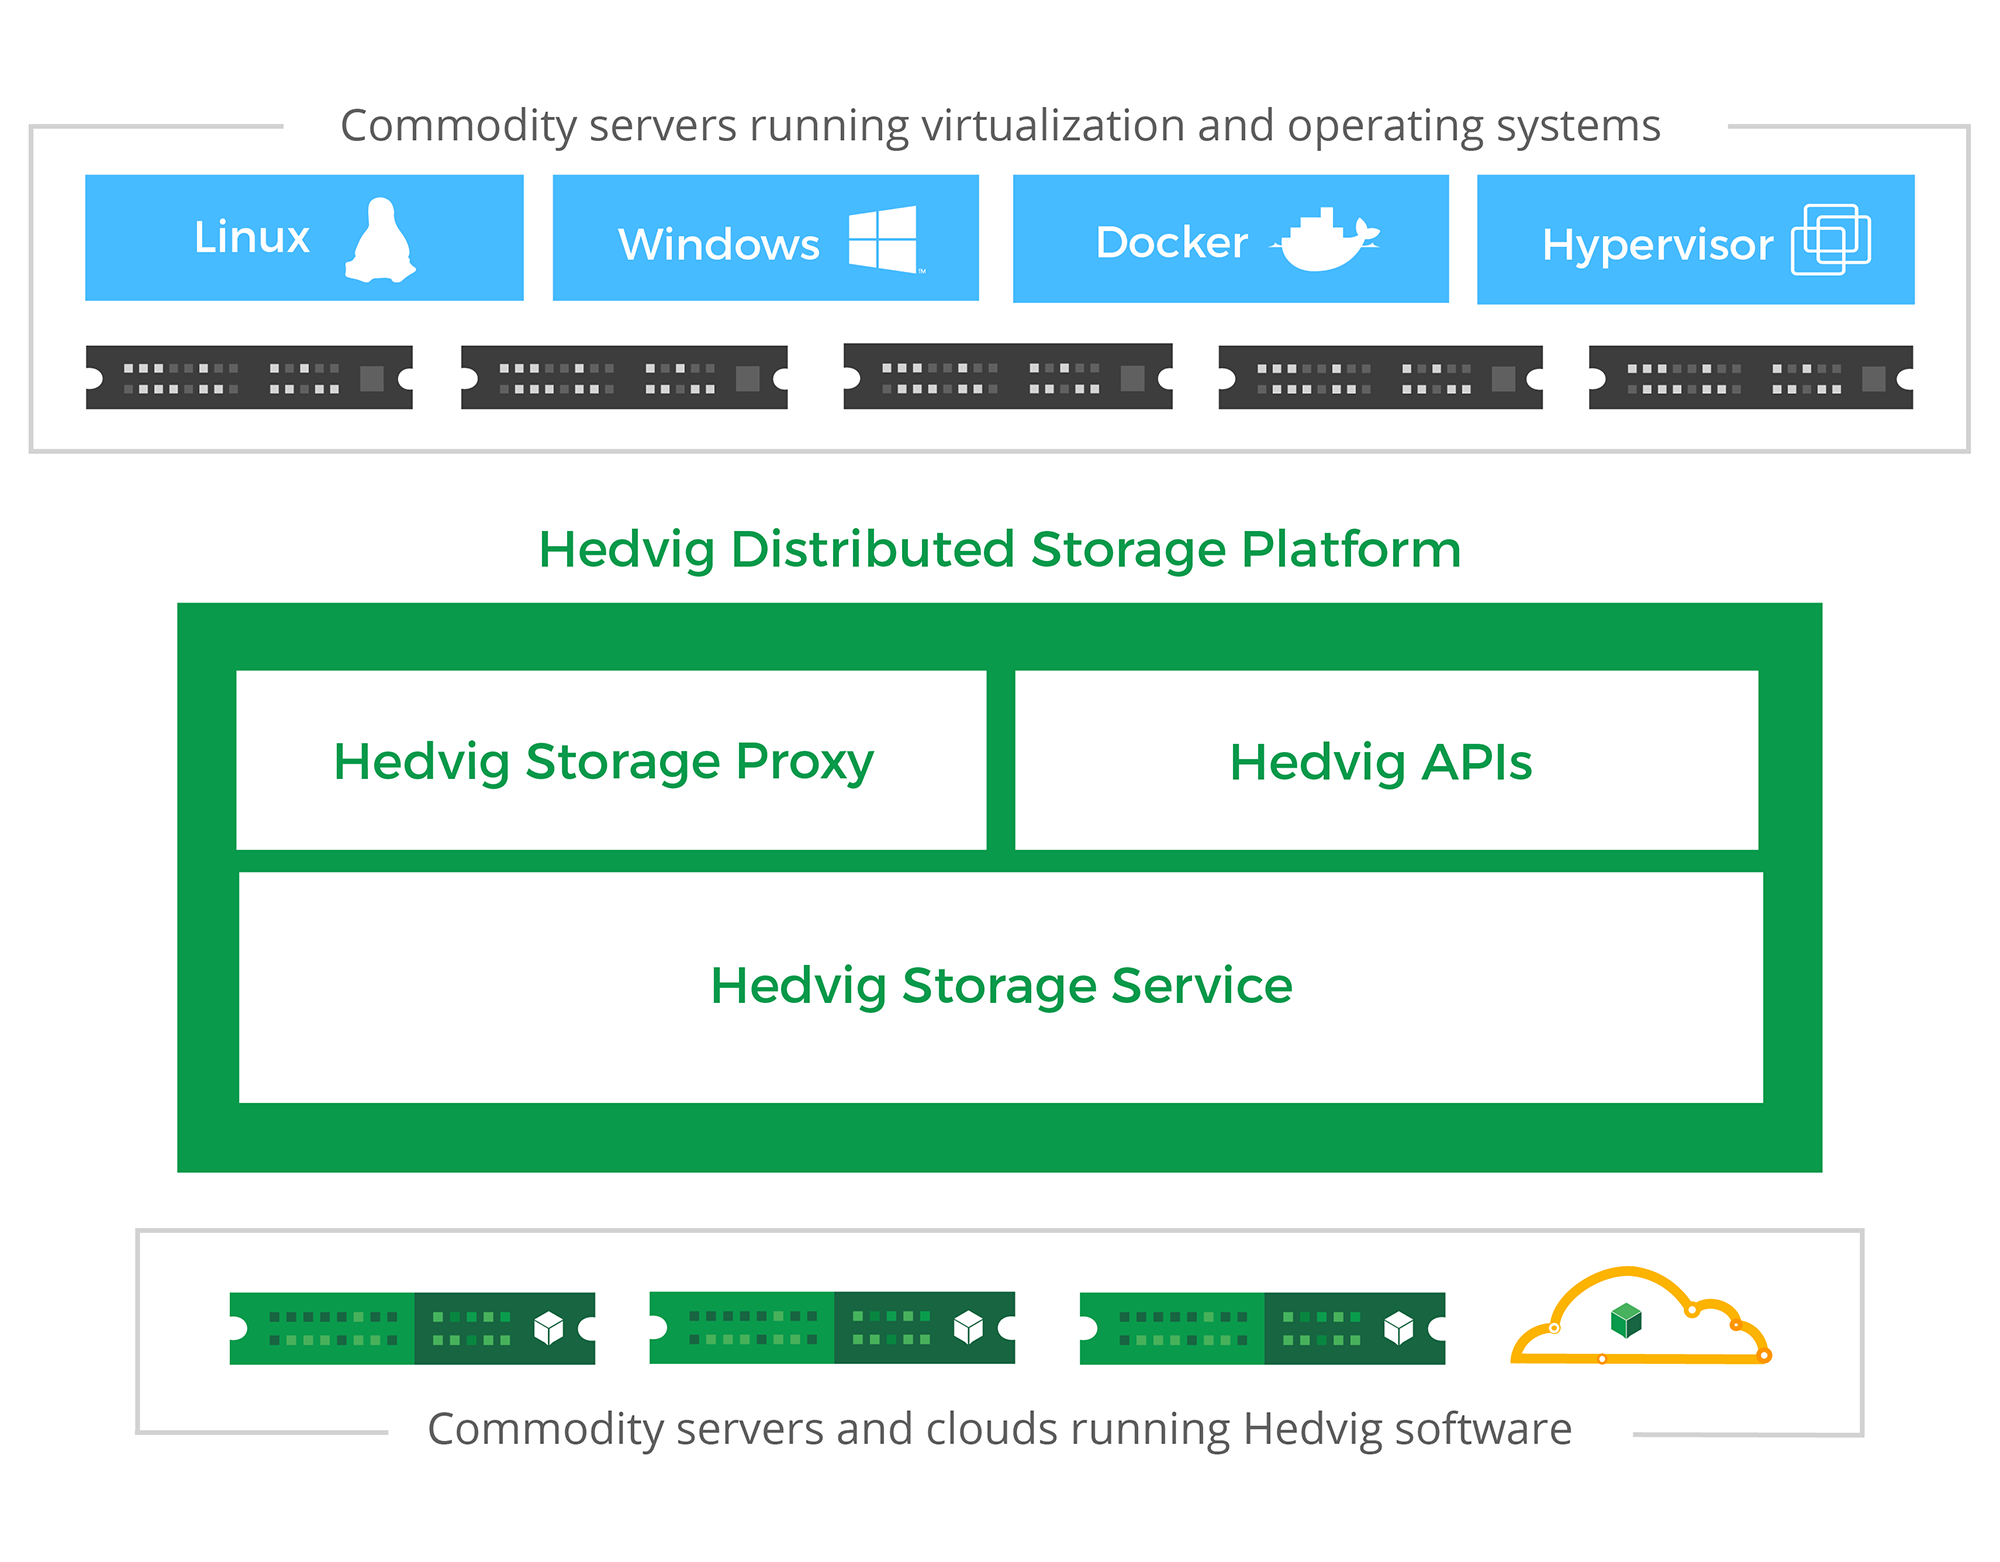 An elastic storage cluster with predictable performance, reliability and cost The Hedvig Distributed Storage Platform provides a flexible, unified, software-enabled system that provides all of the